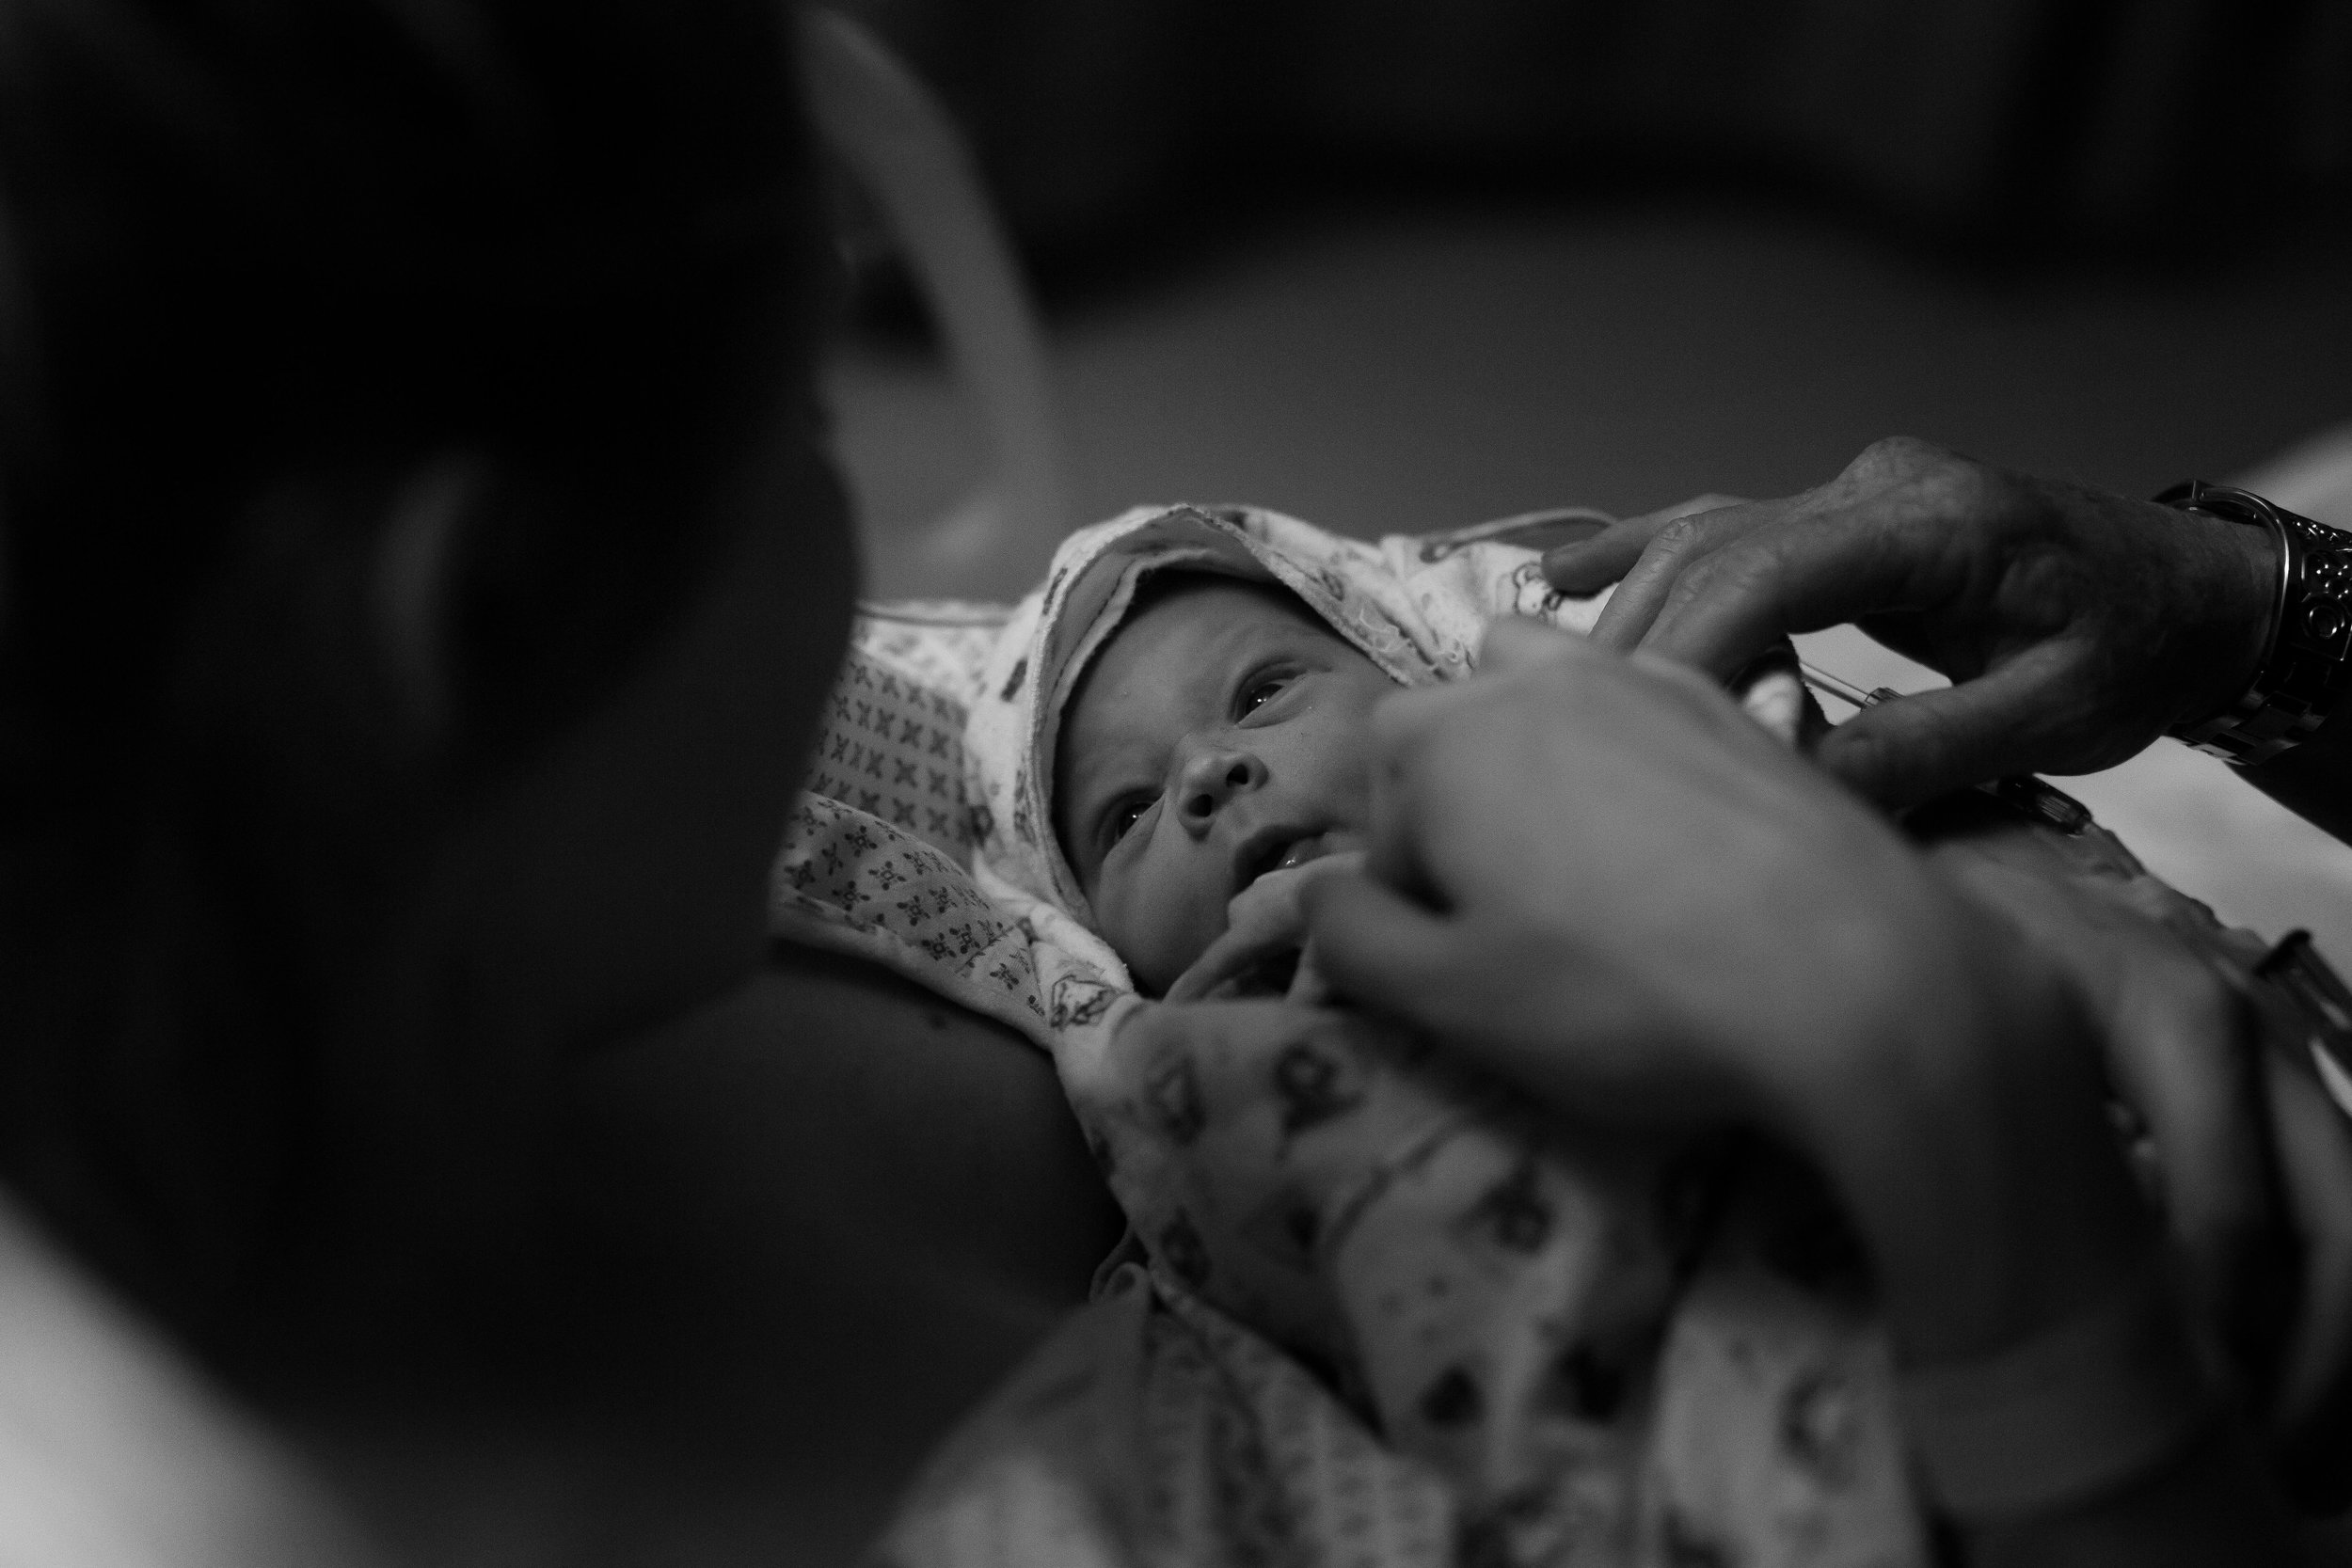 My sister meeting her baby boy - my very first birth photography experience.